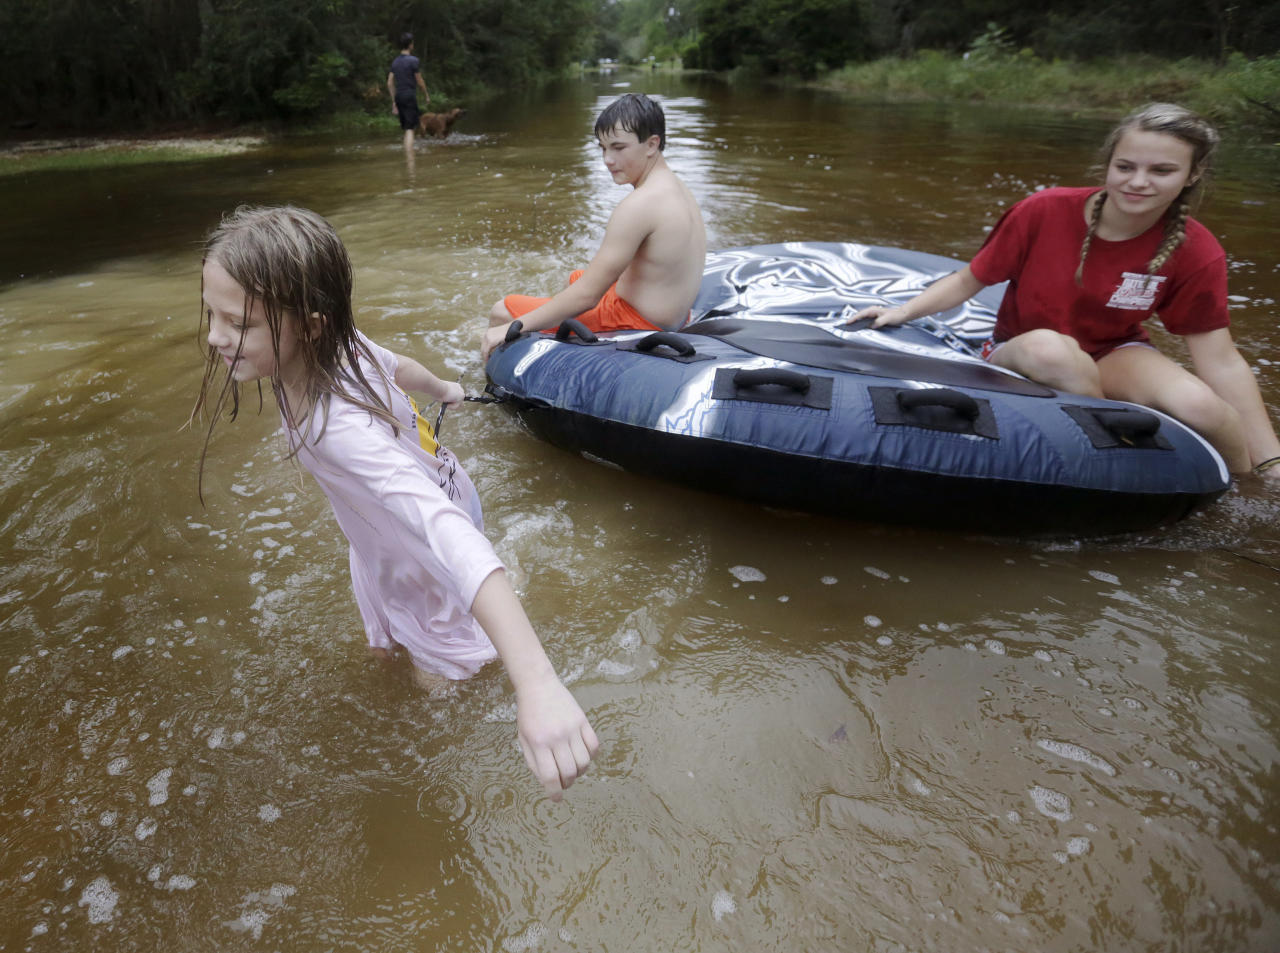 <p>Crimson Peters, 7, left, Tracy Neilsen, 13, center, and Macee Nelson, 15, ride in an inner tube down a flooded street after Hurricane Nate, Sunday, Oct. 8, 2017, in Coden, Ala. (Photo: Brynn Anderson/AP) </p>